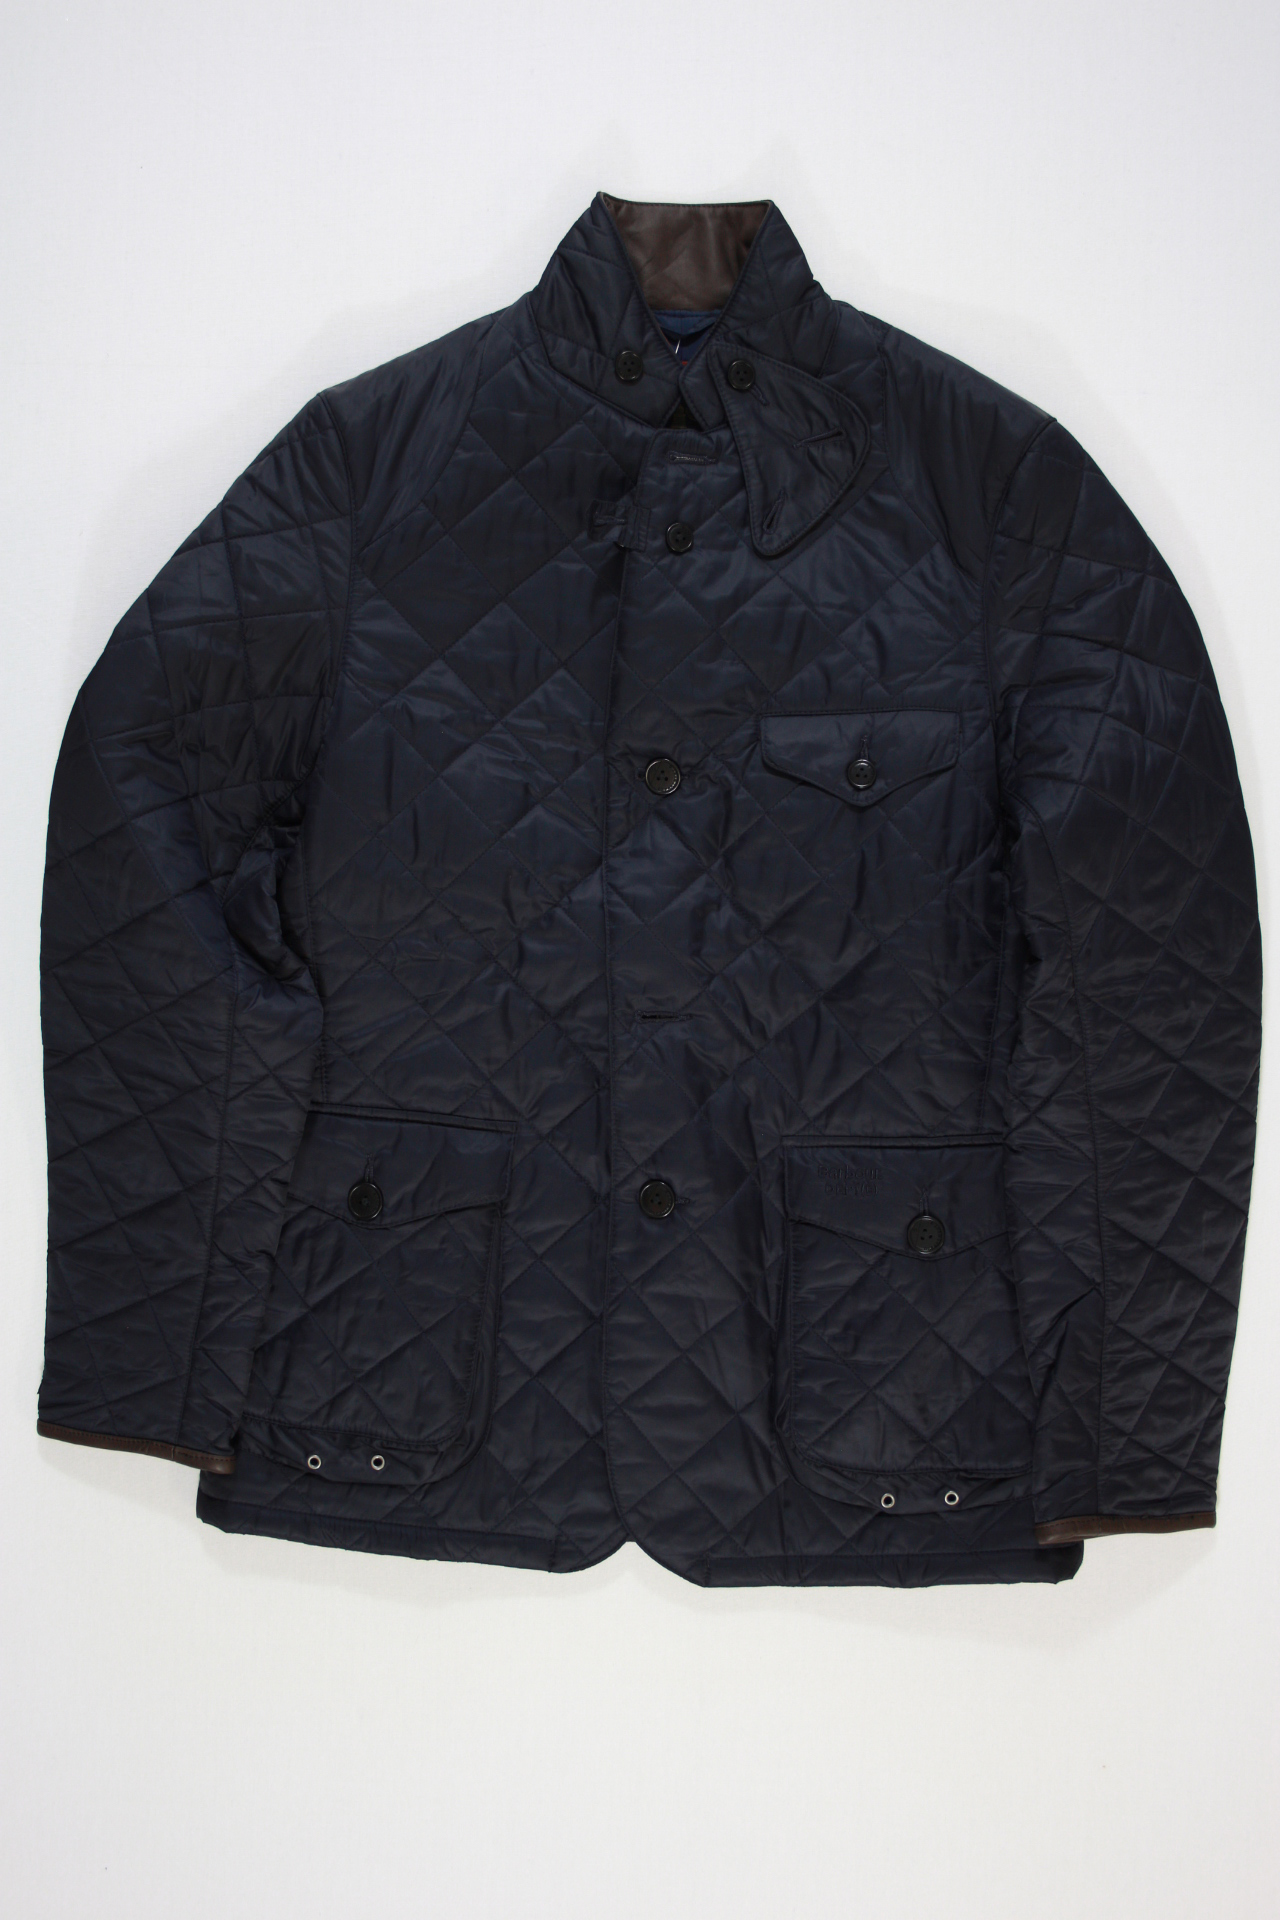 Barbour Jas Sports Ruiter Blauw